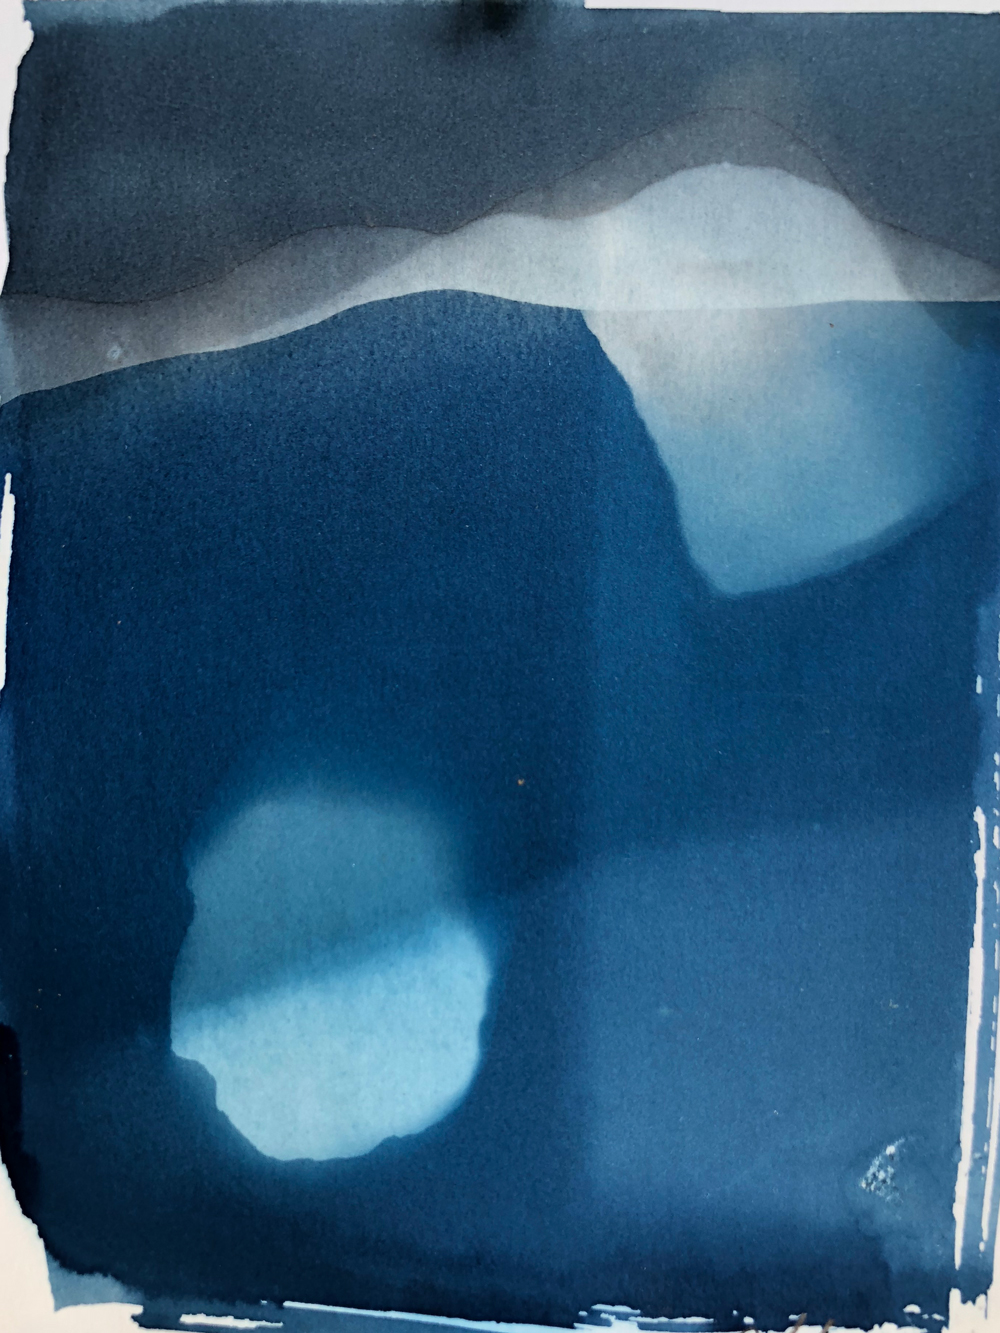 Canal Prints - (2018) Cyanotype prints created by the rocks and water of the Gowanus Canal.